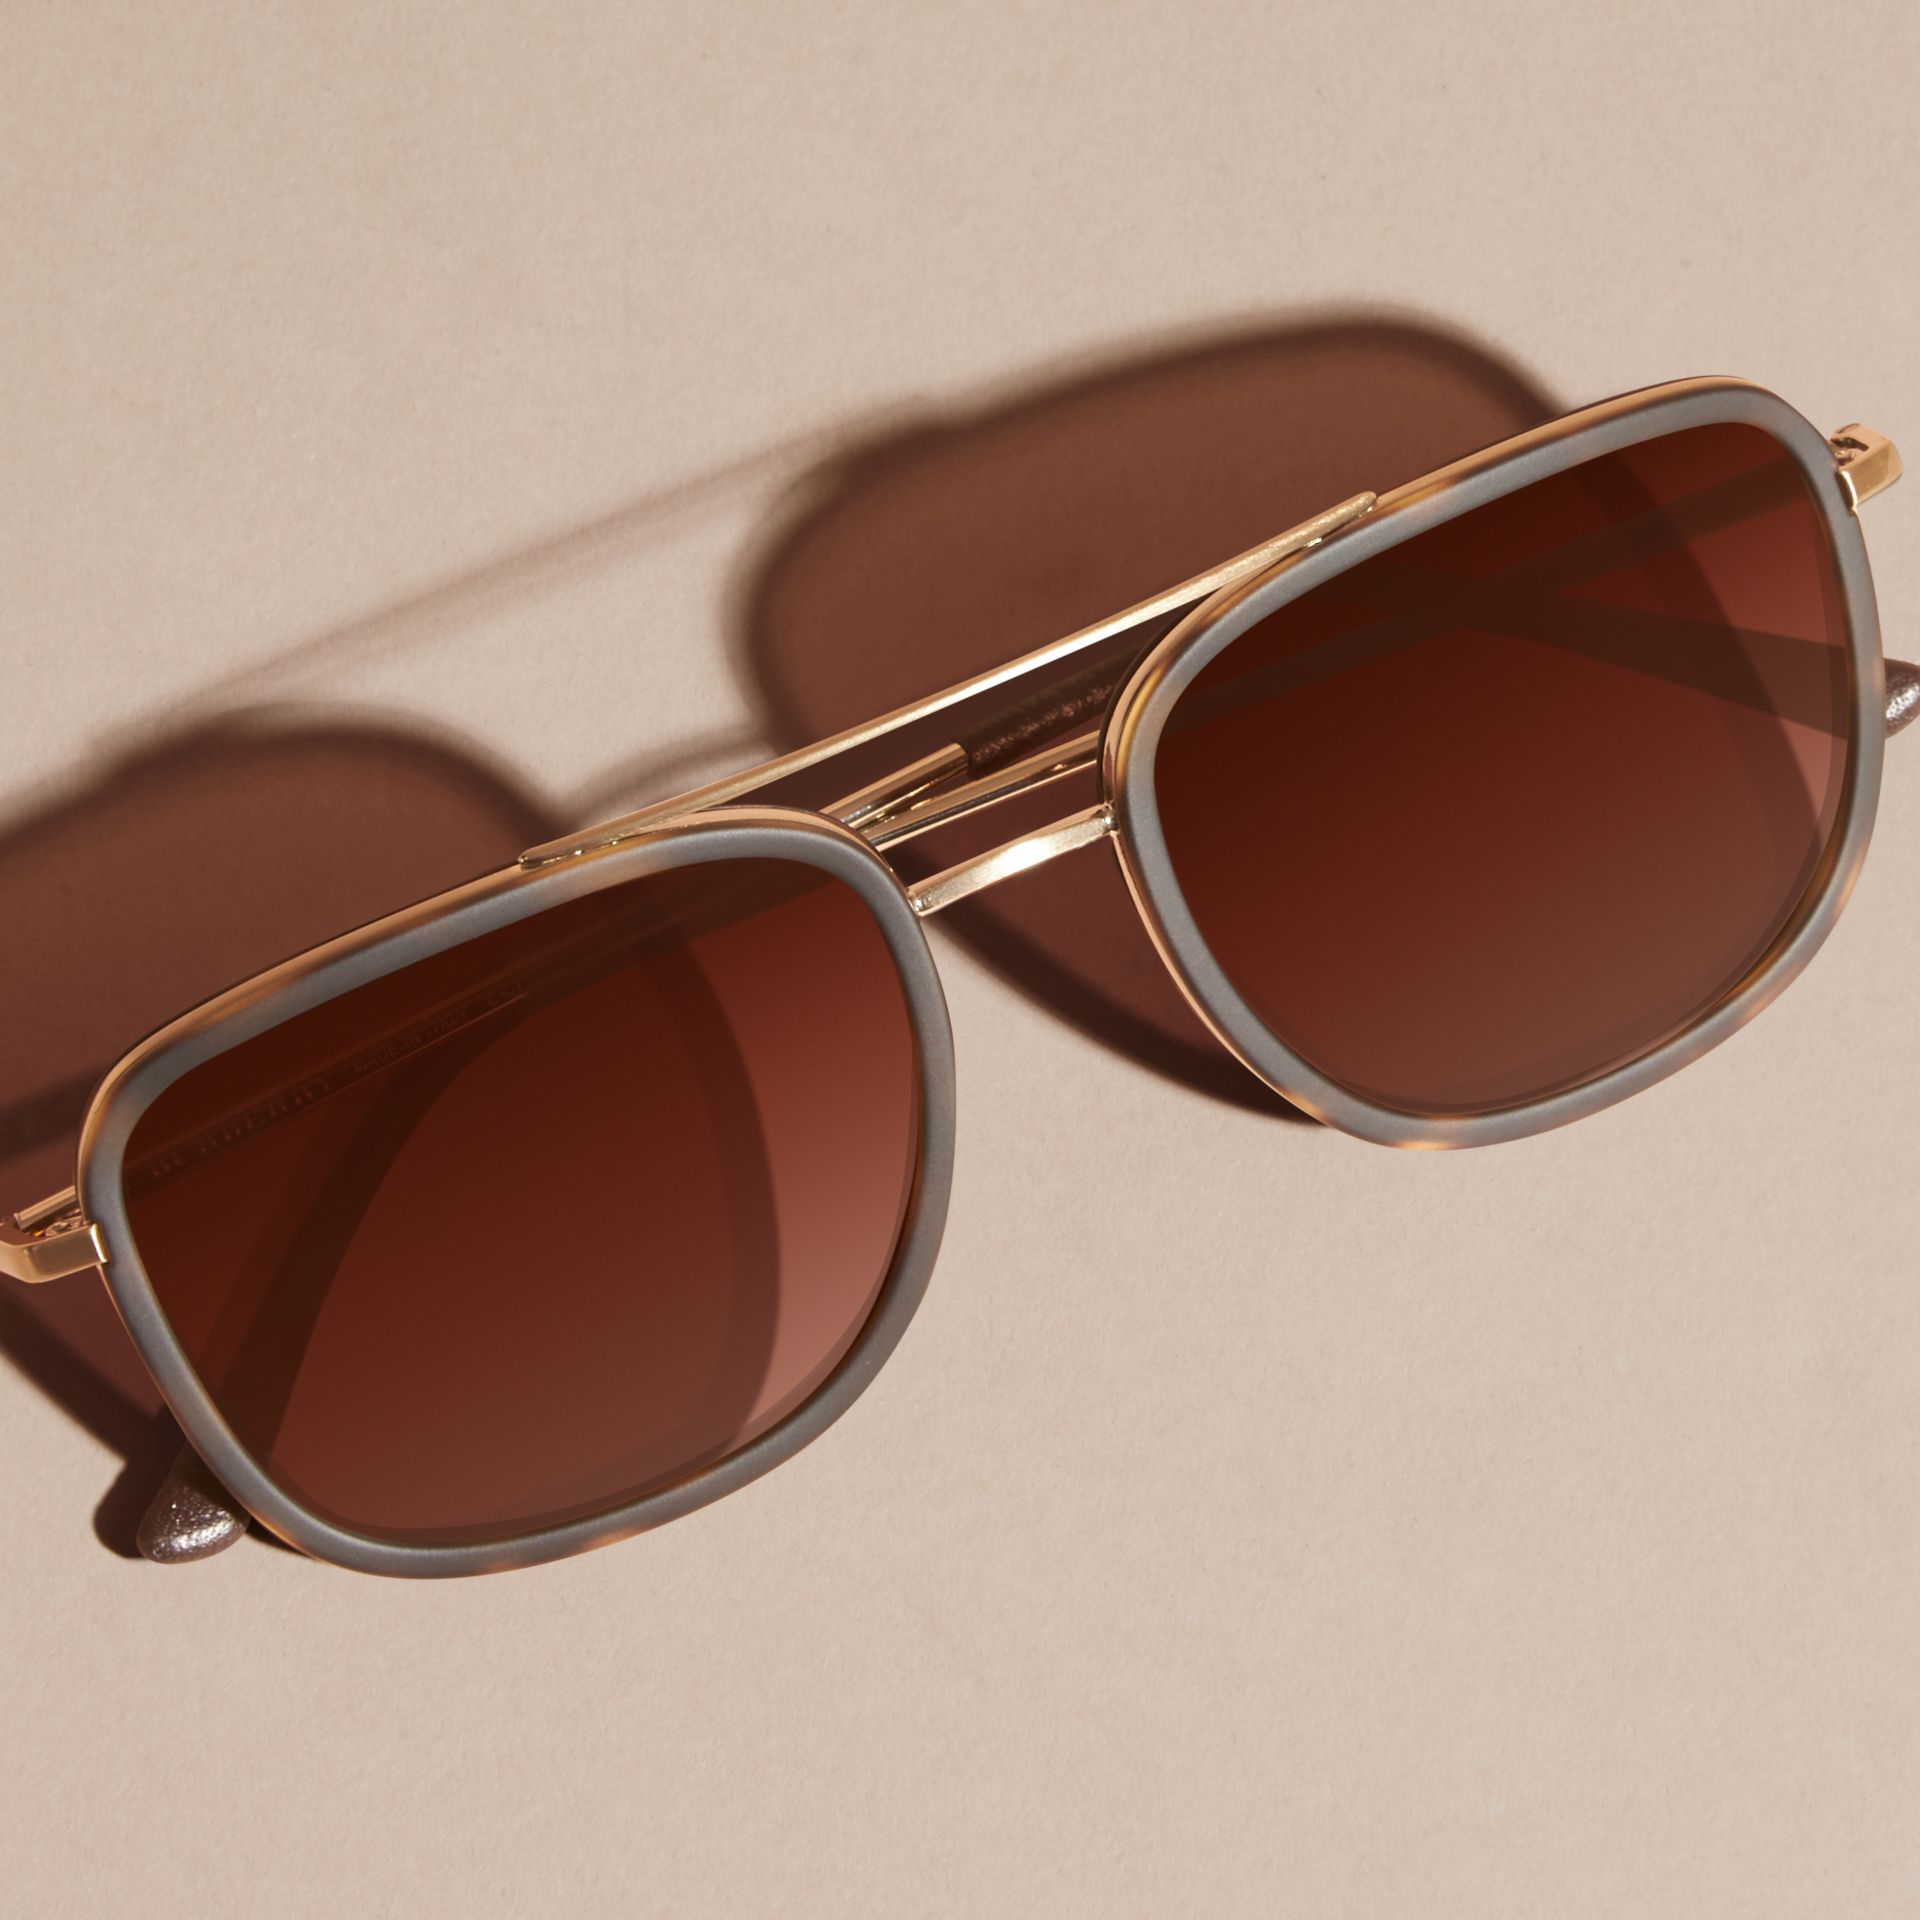 Glasses Leather Frame : Square Frame Acetate and Leather Sunglasses Tortoise Shell ...